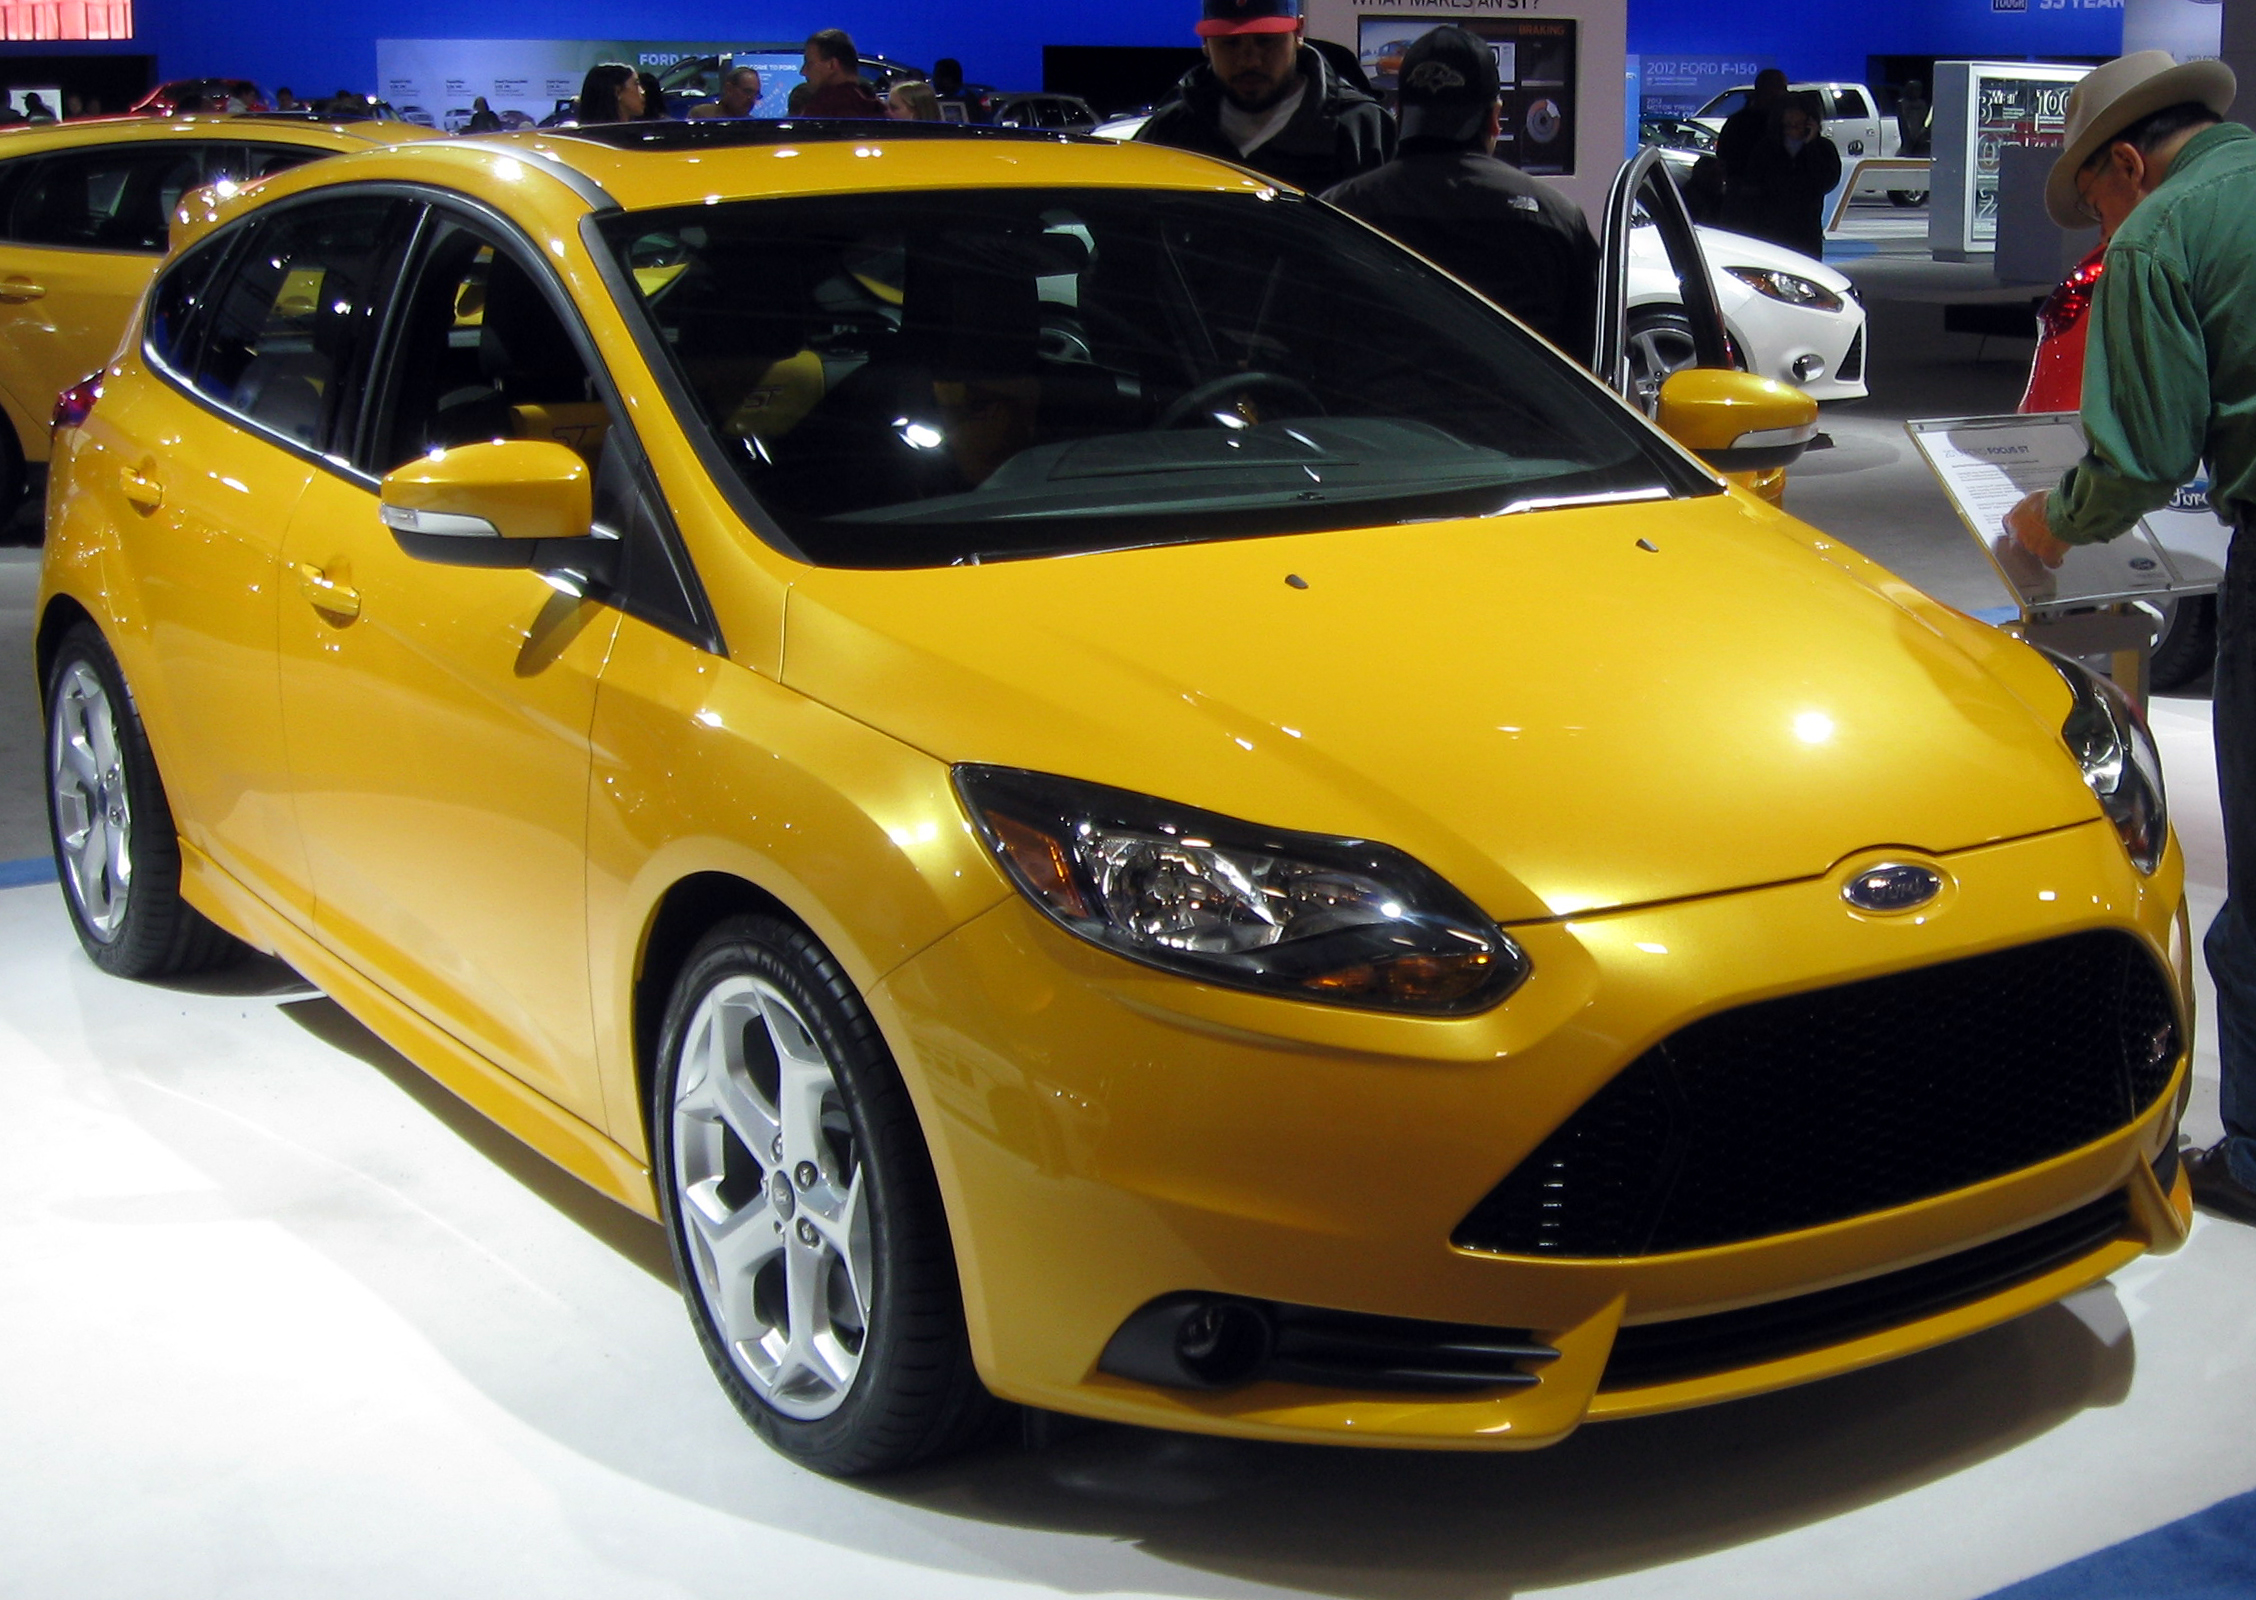 Ford focus 2013 philippines review.